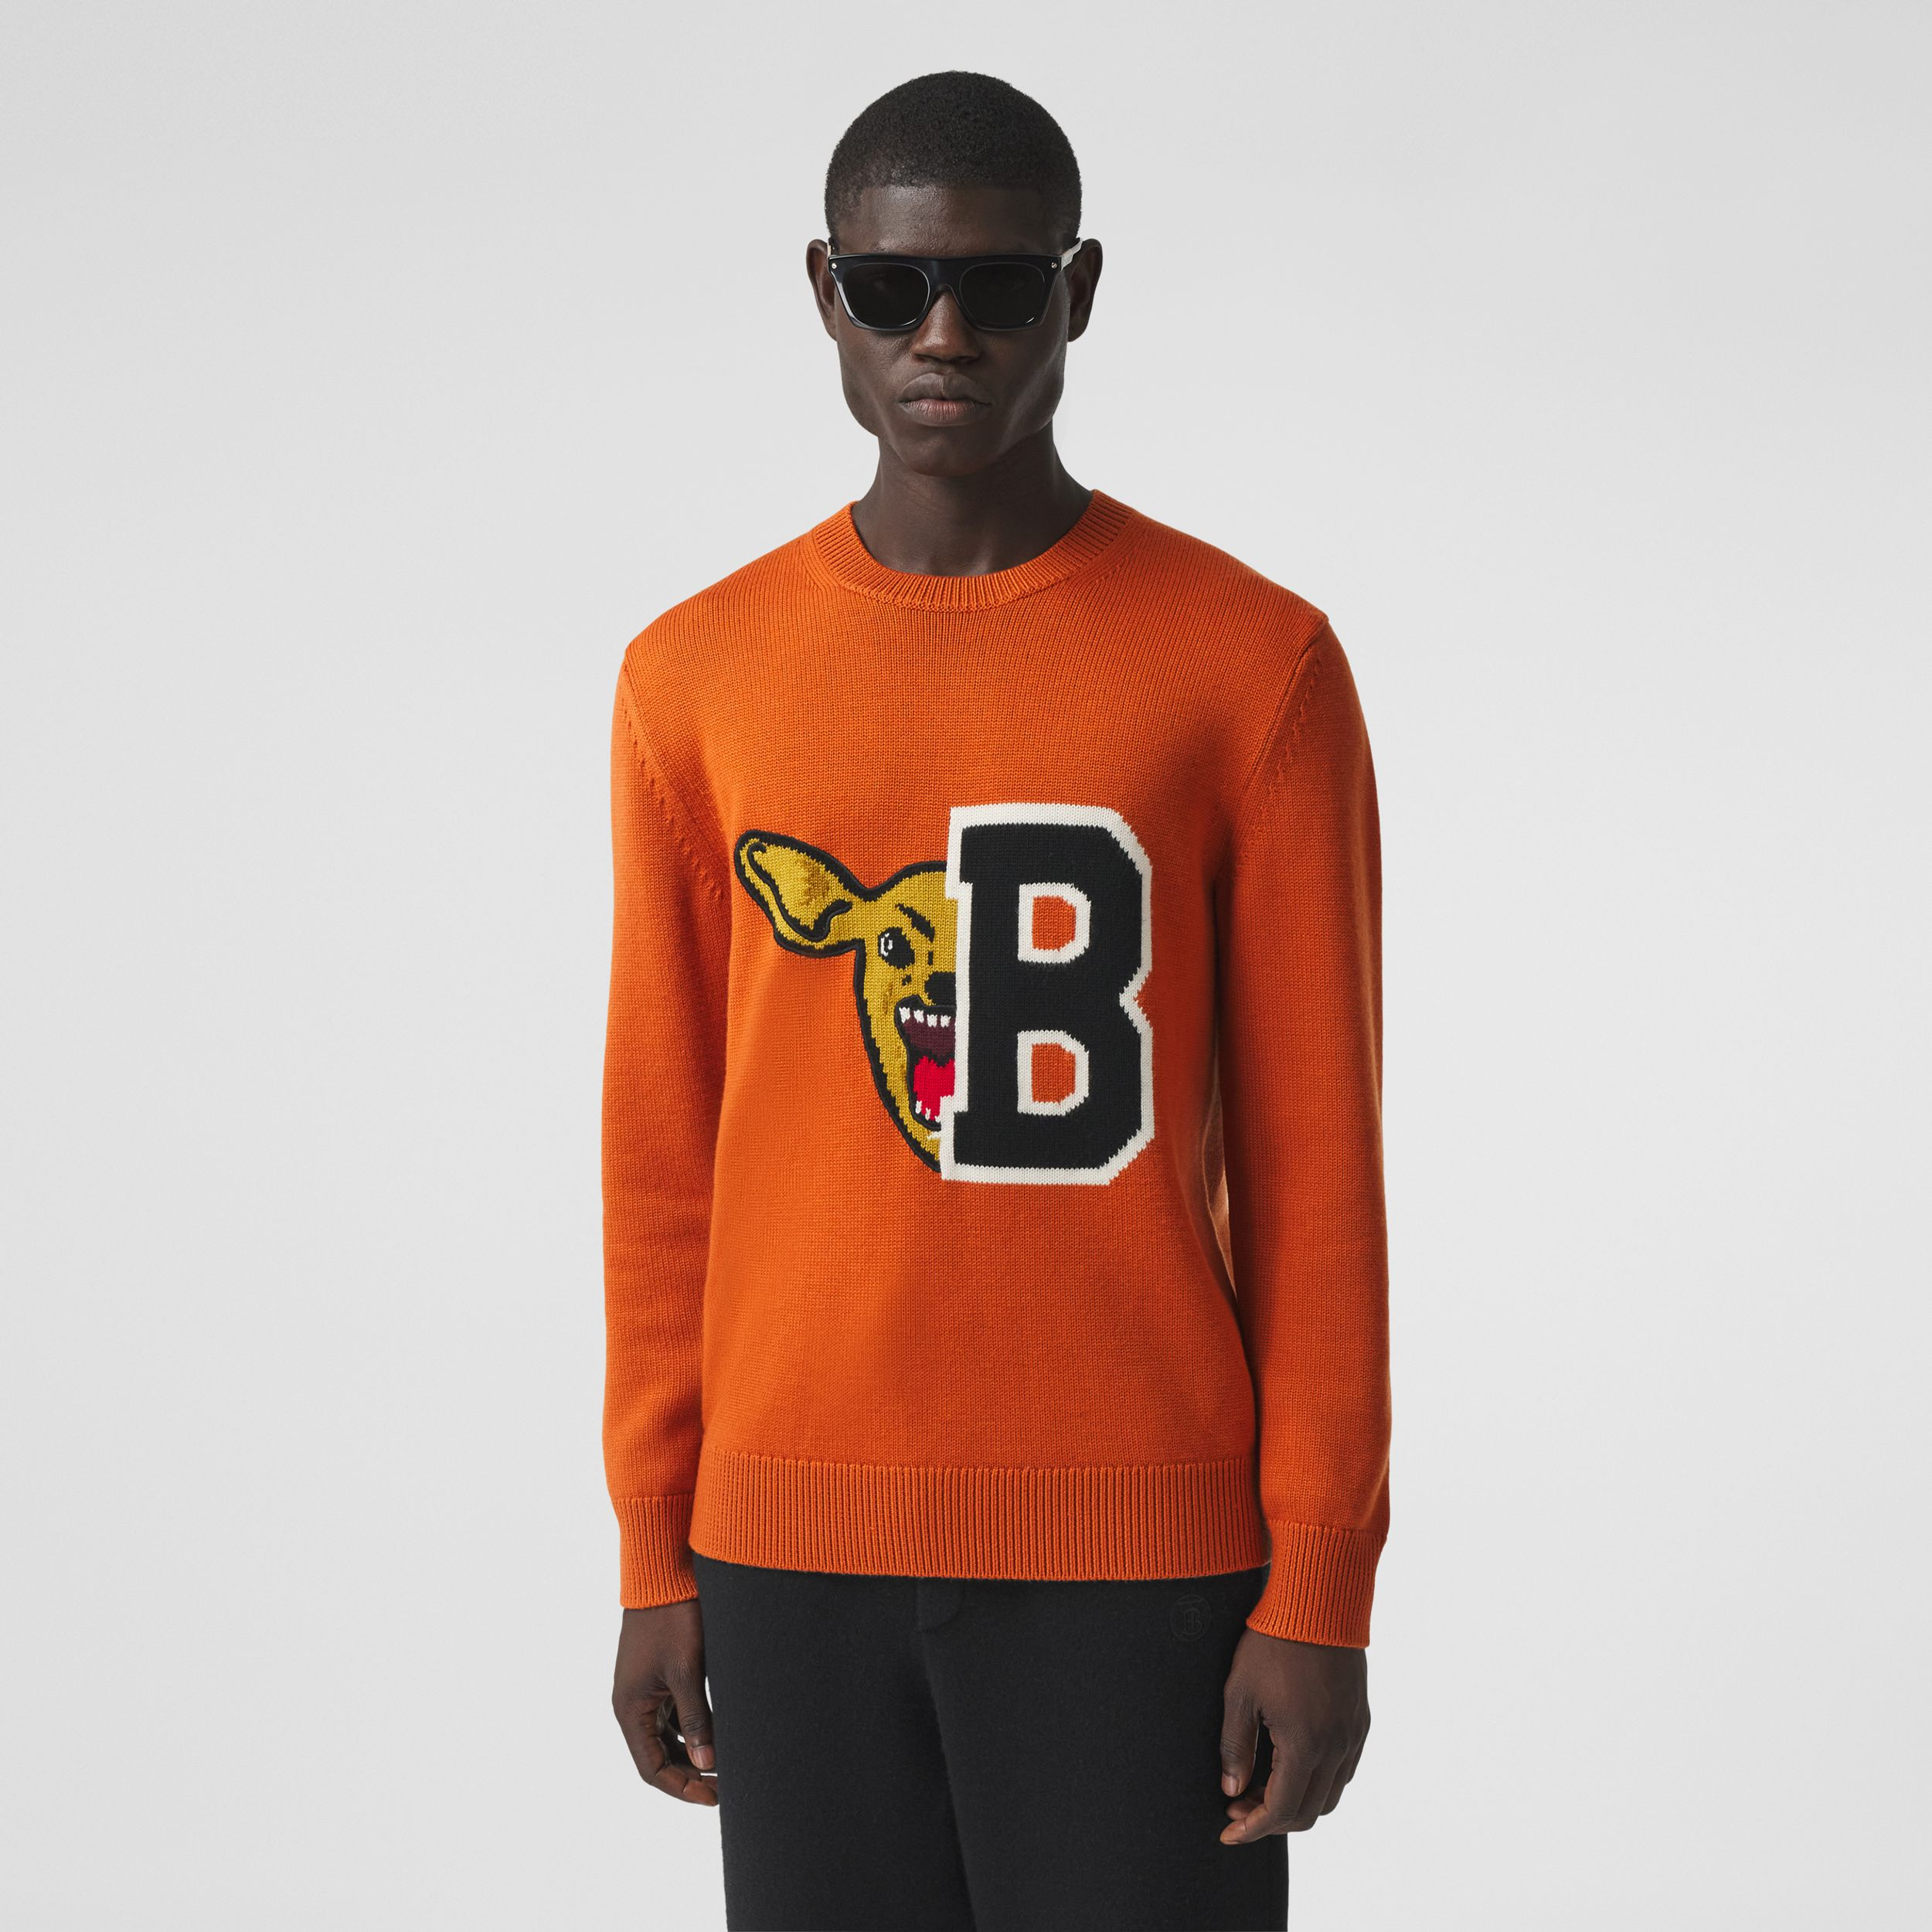 Varsity Graphic Merino Wool Jacquard Sweater in Burnt Orange - Men | Burberry - 1